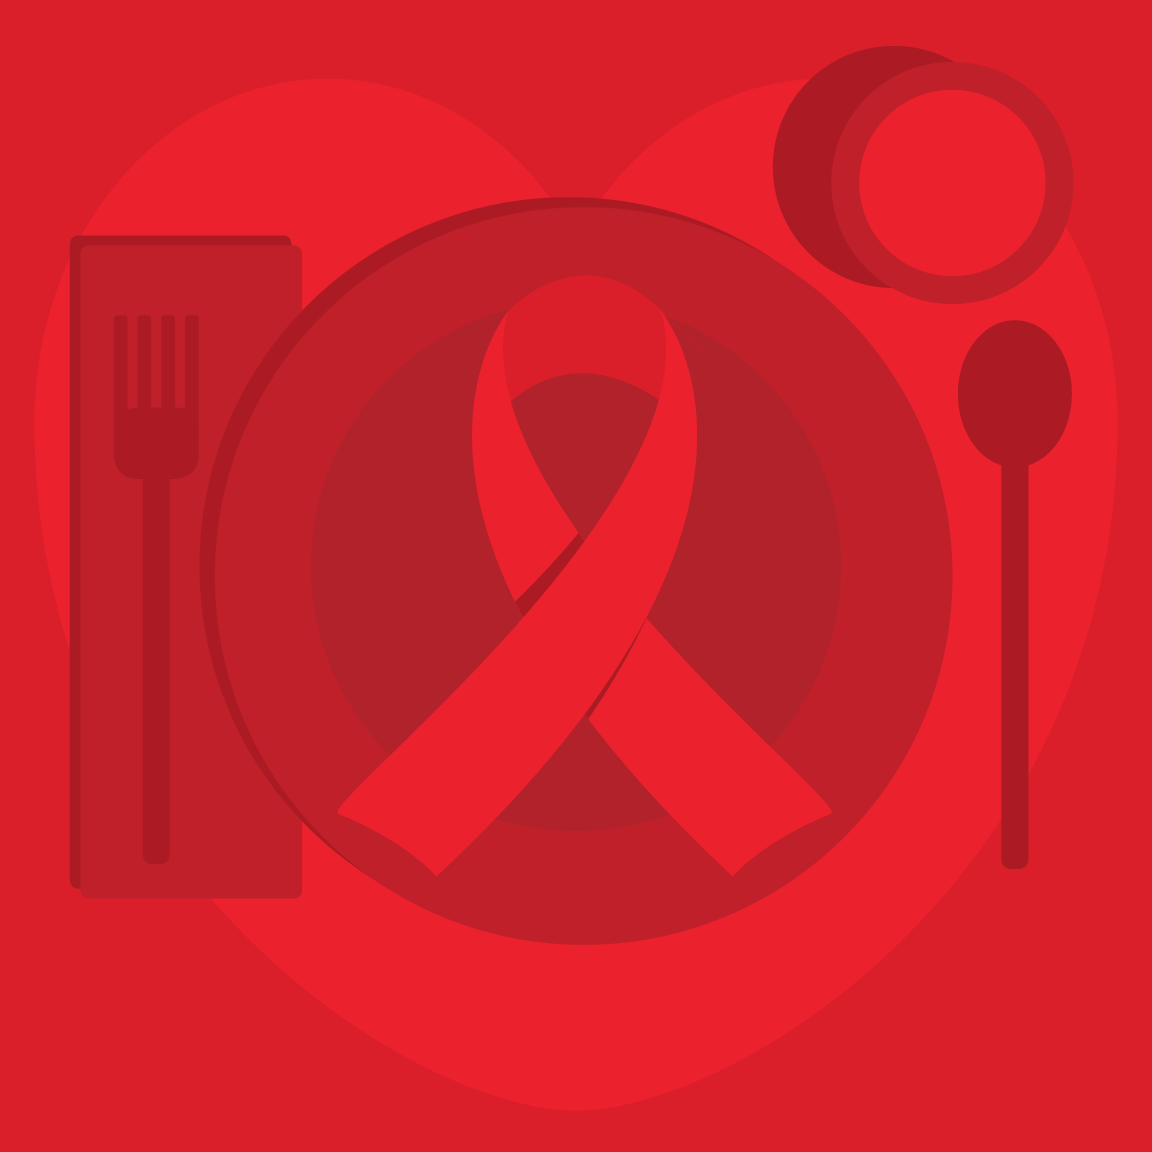 worldaidsday_graphic_1200.png